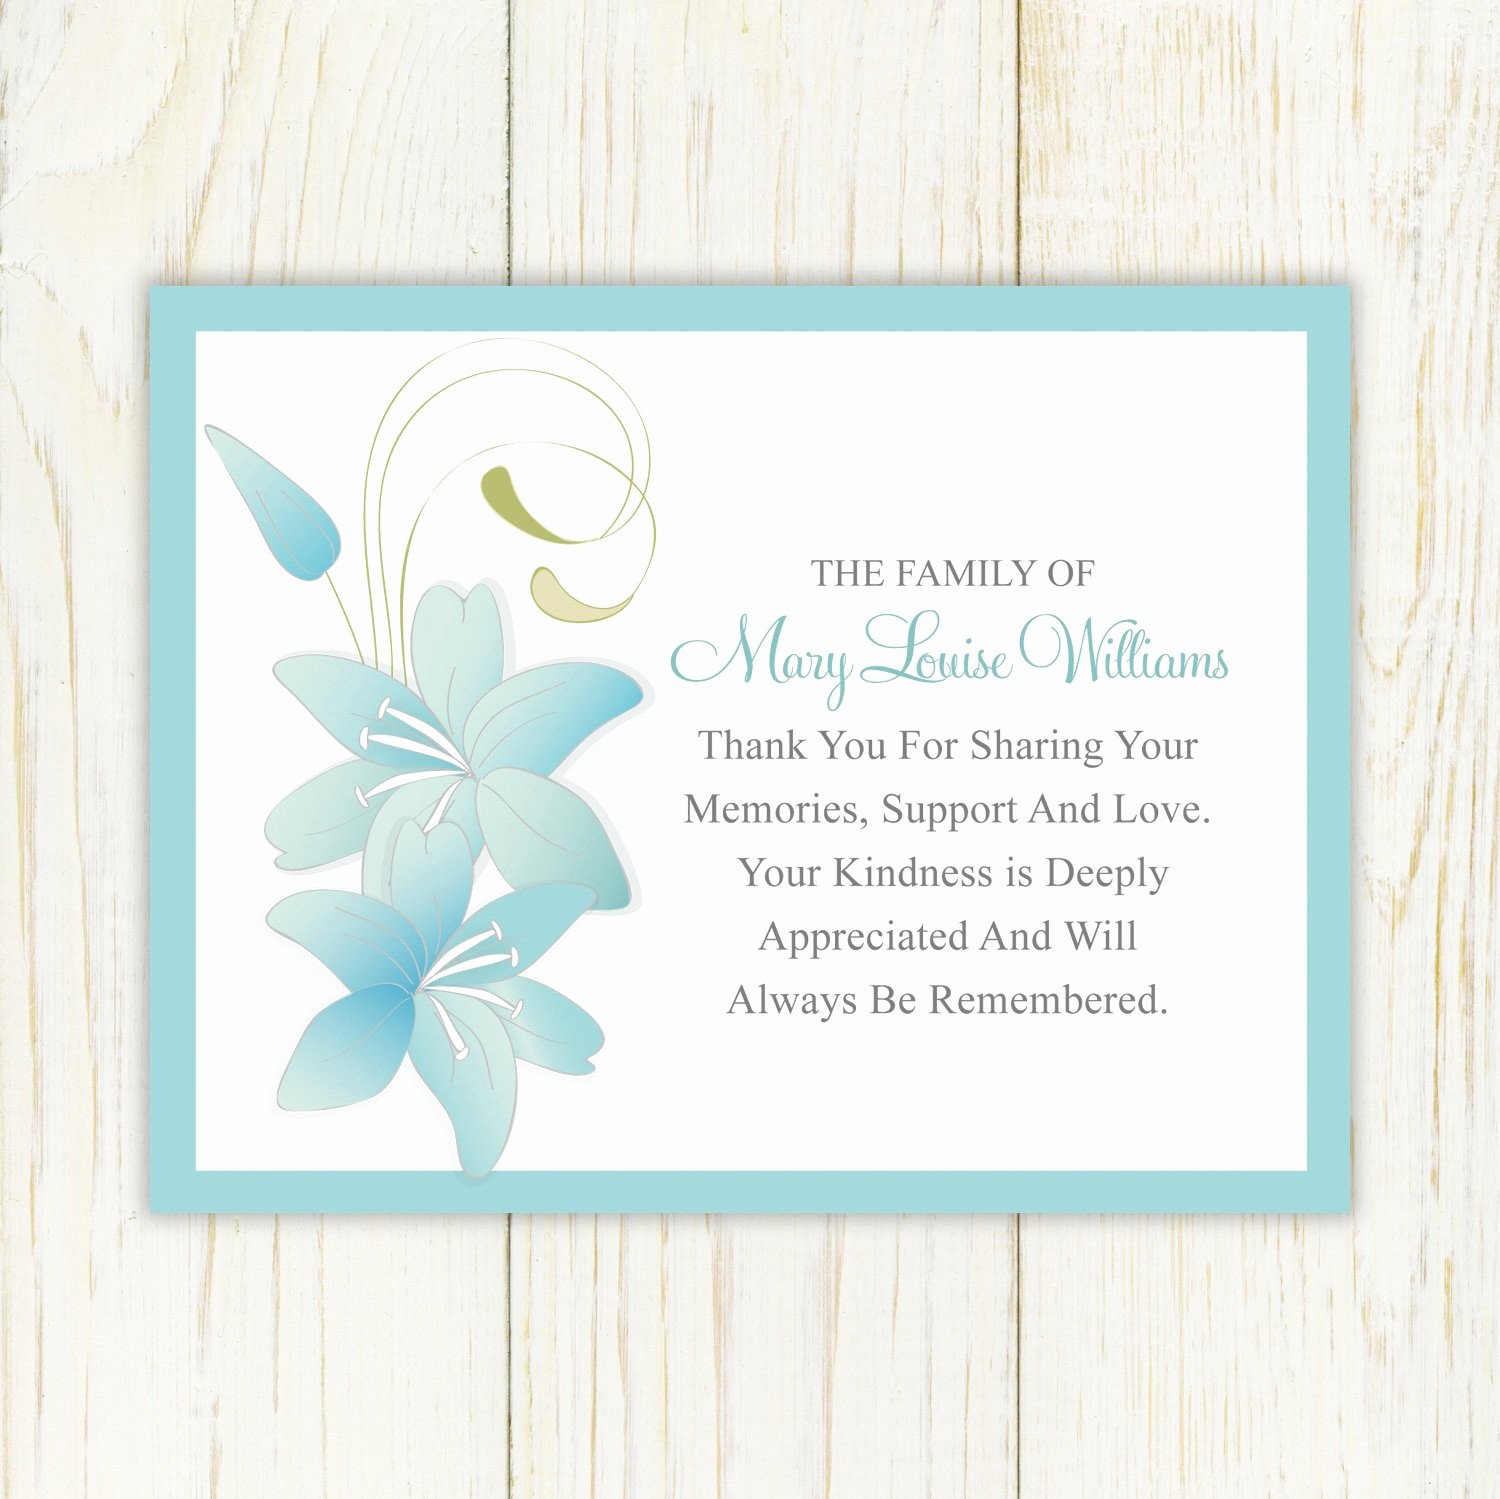 Words for Thank You Cards Lovely Sympathy Card Wording